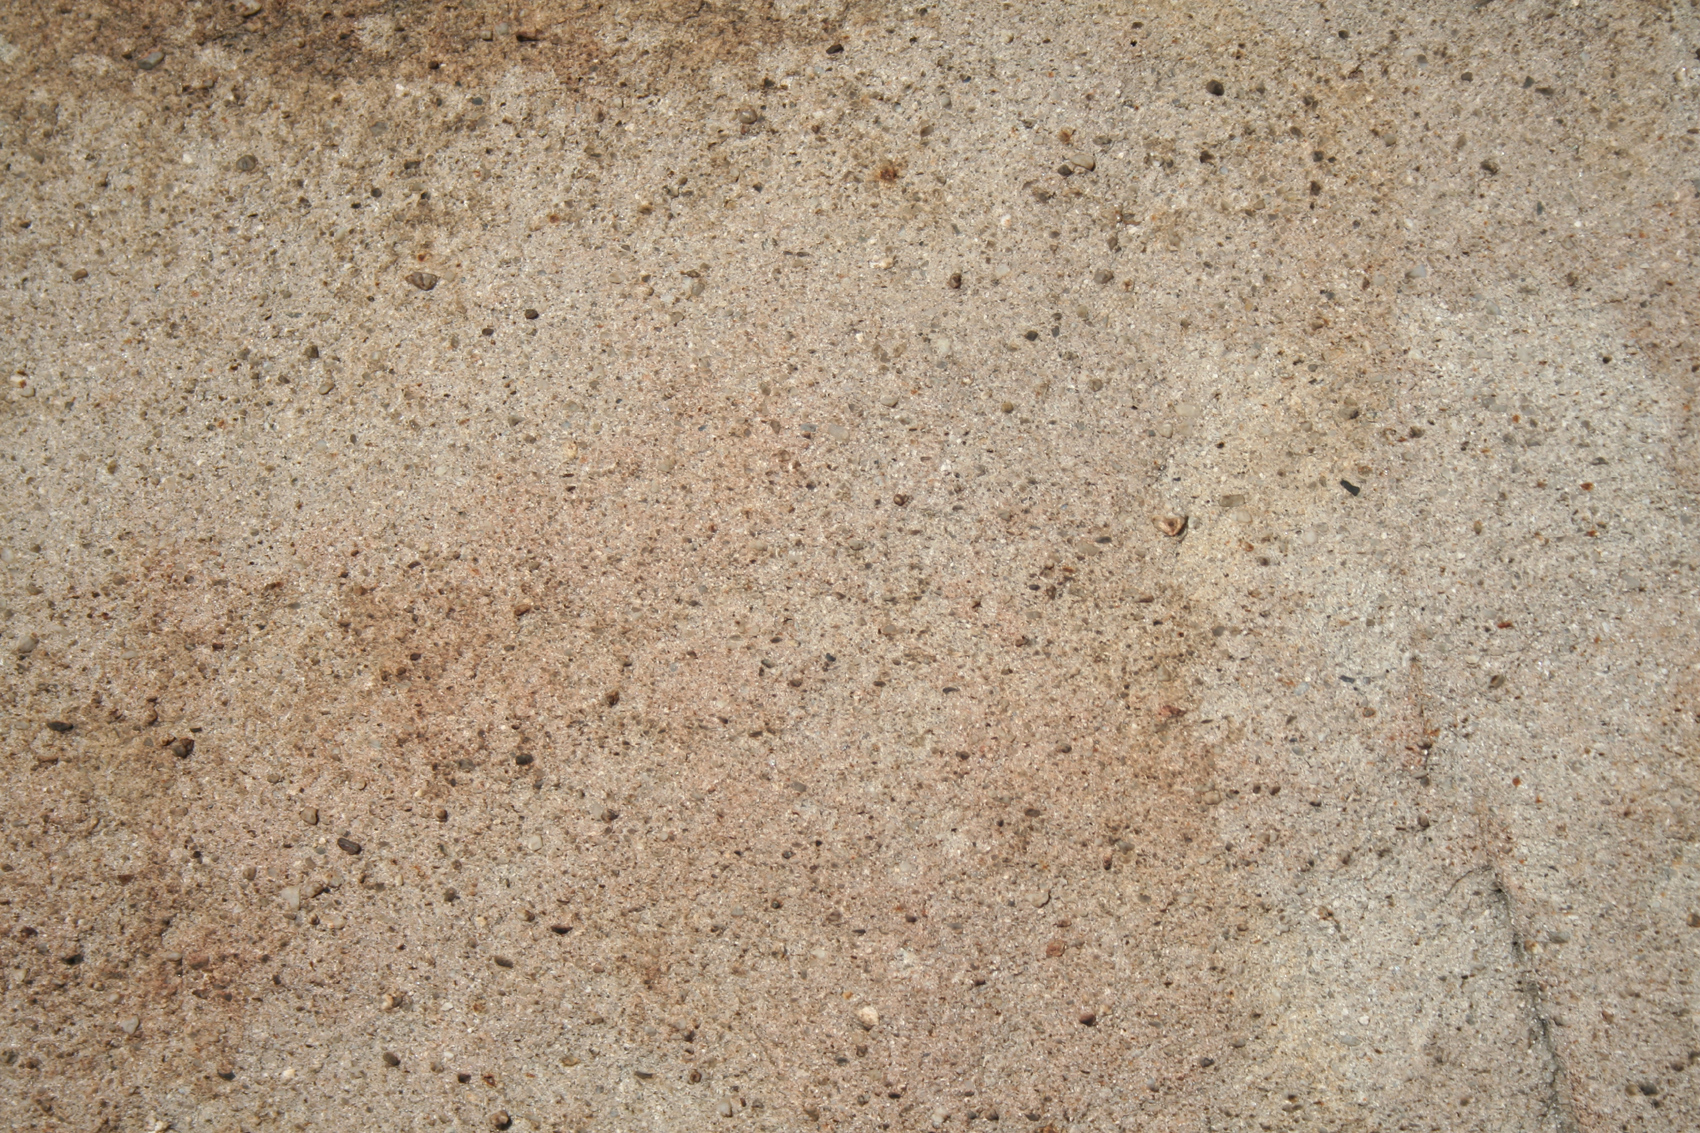 Granite Background Texture : Background texture stone stones wall download